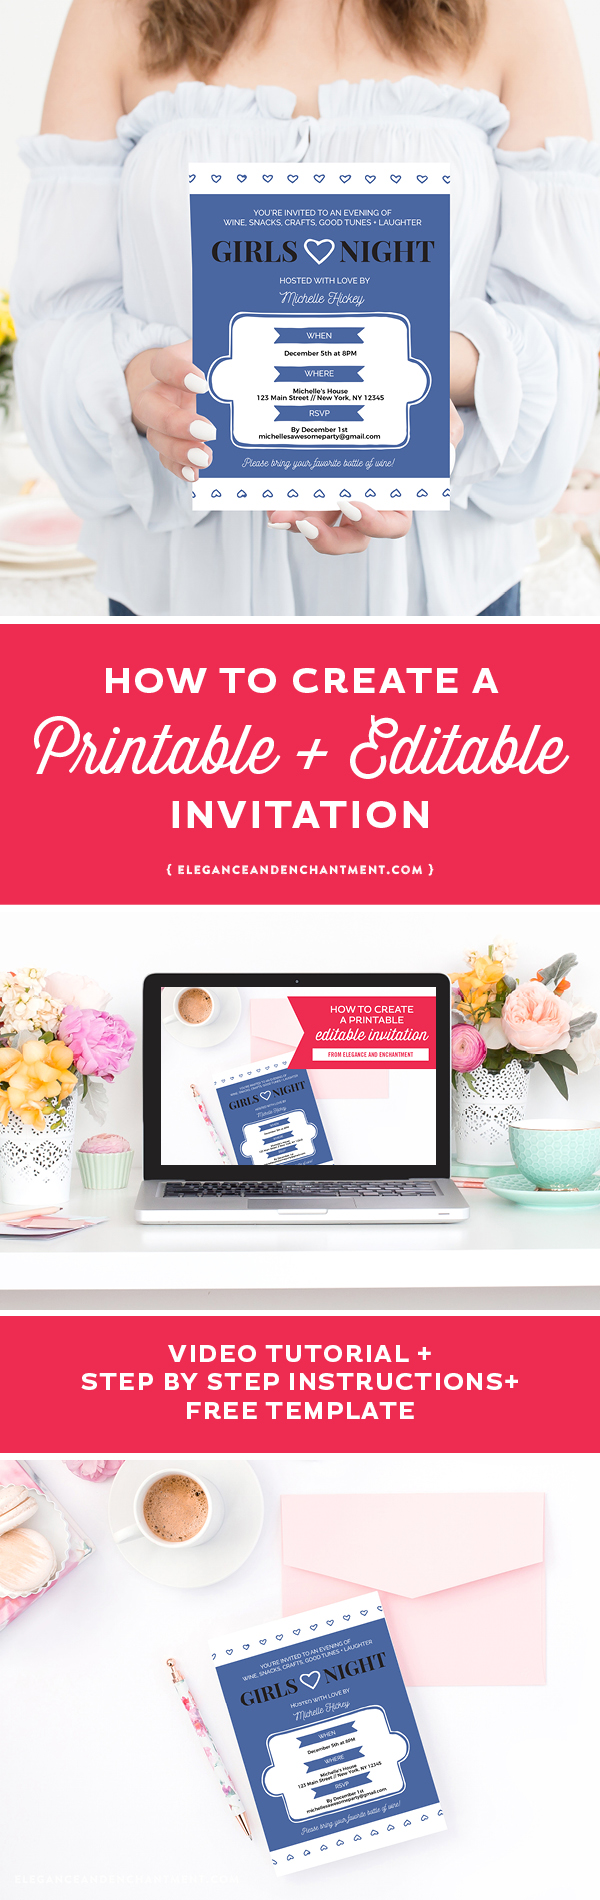 image about How to Create a Printable named How towards acquire a printable editable invitation - Beauty